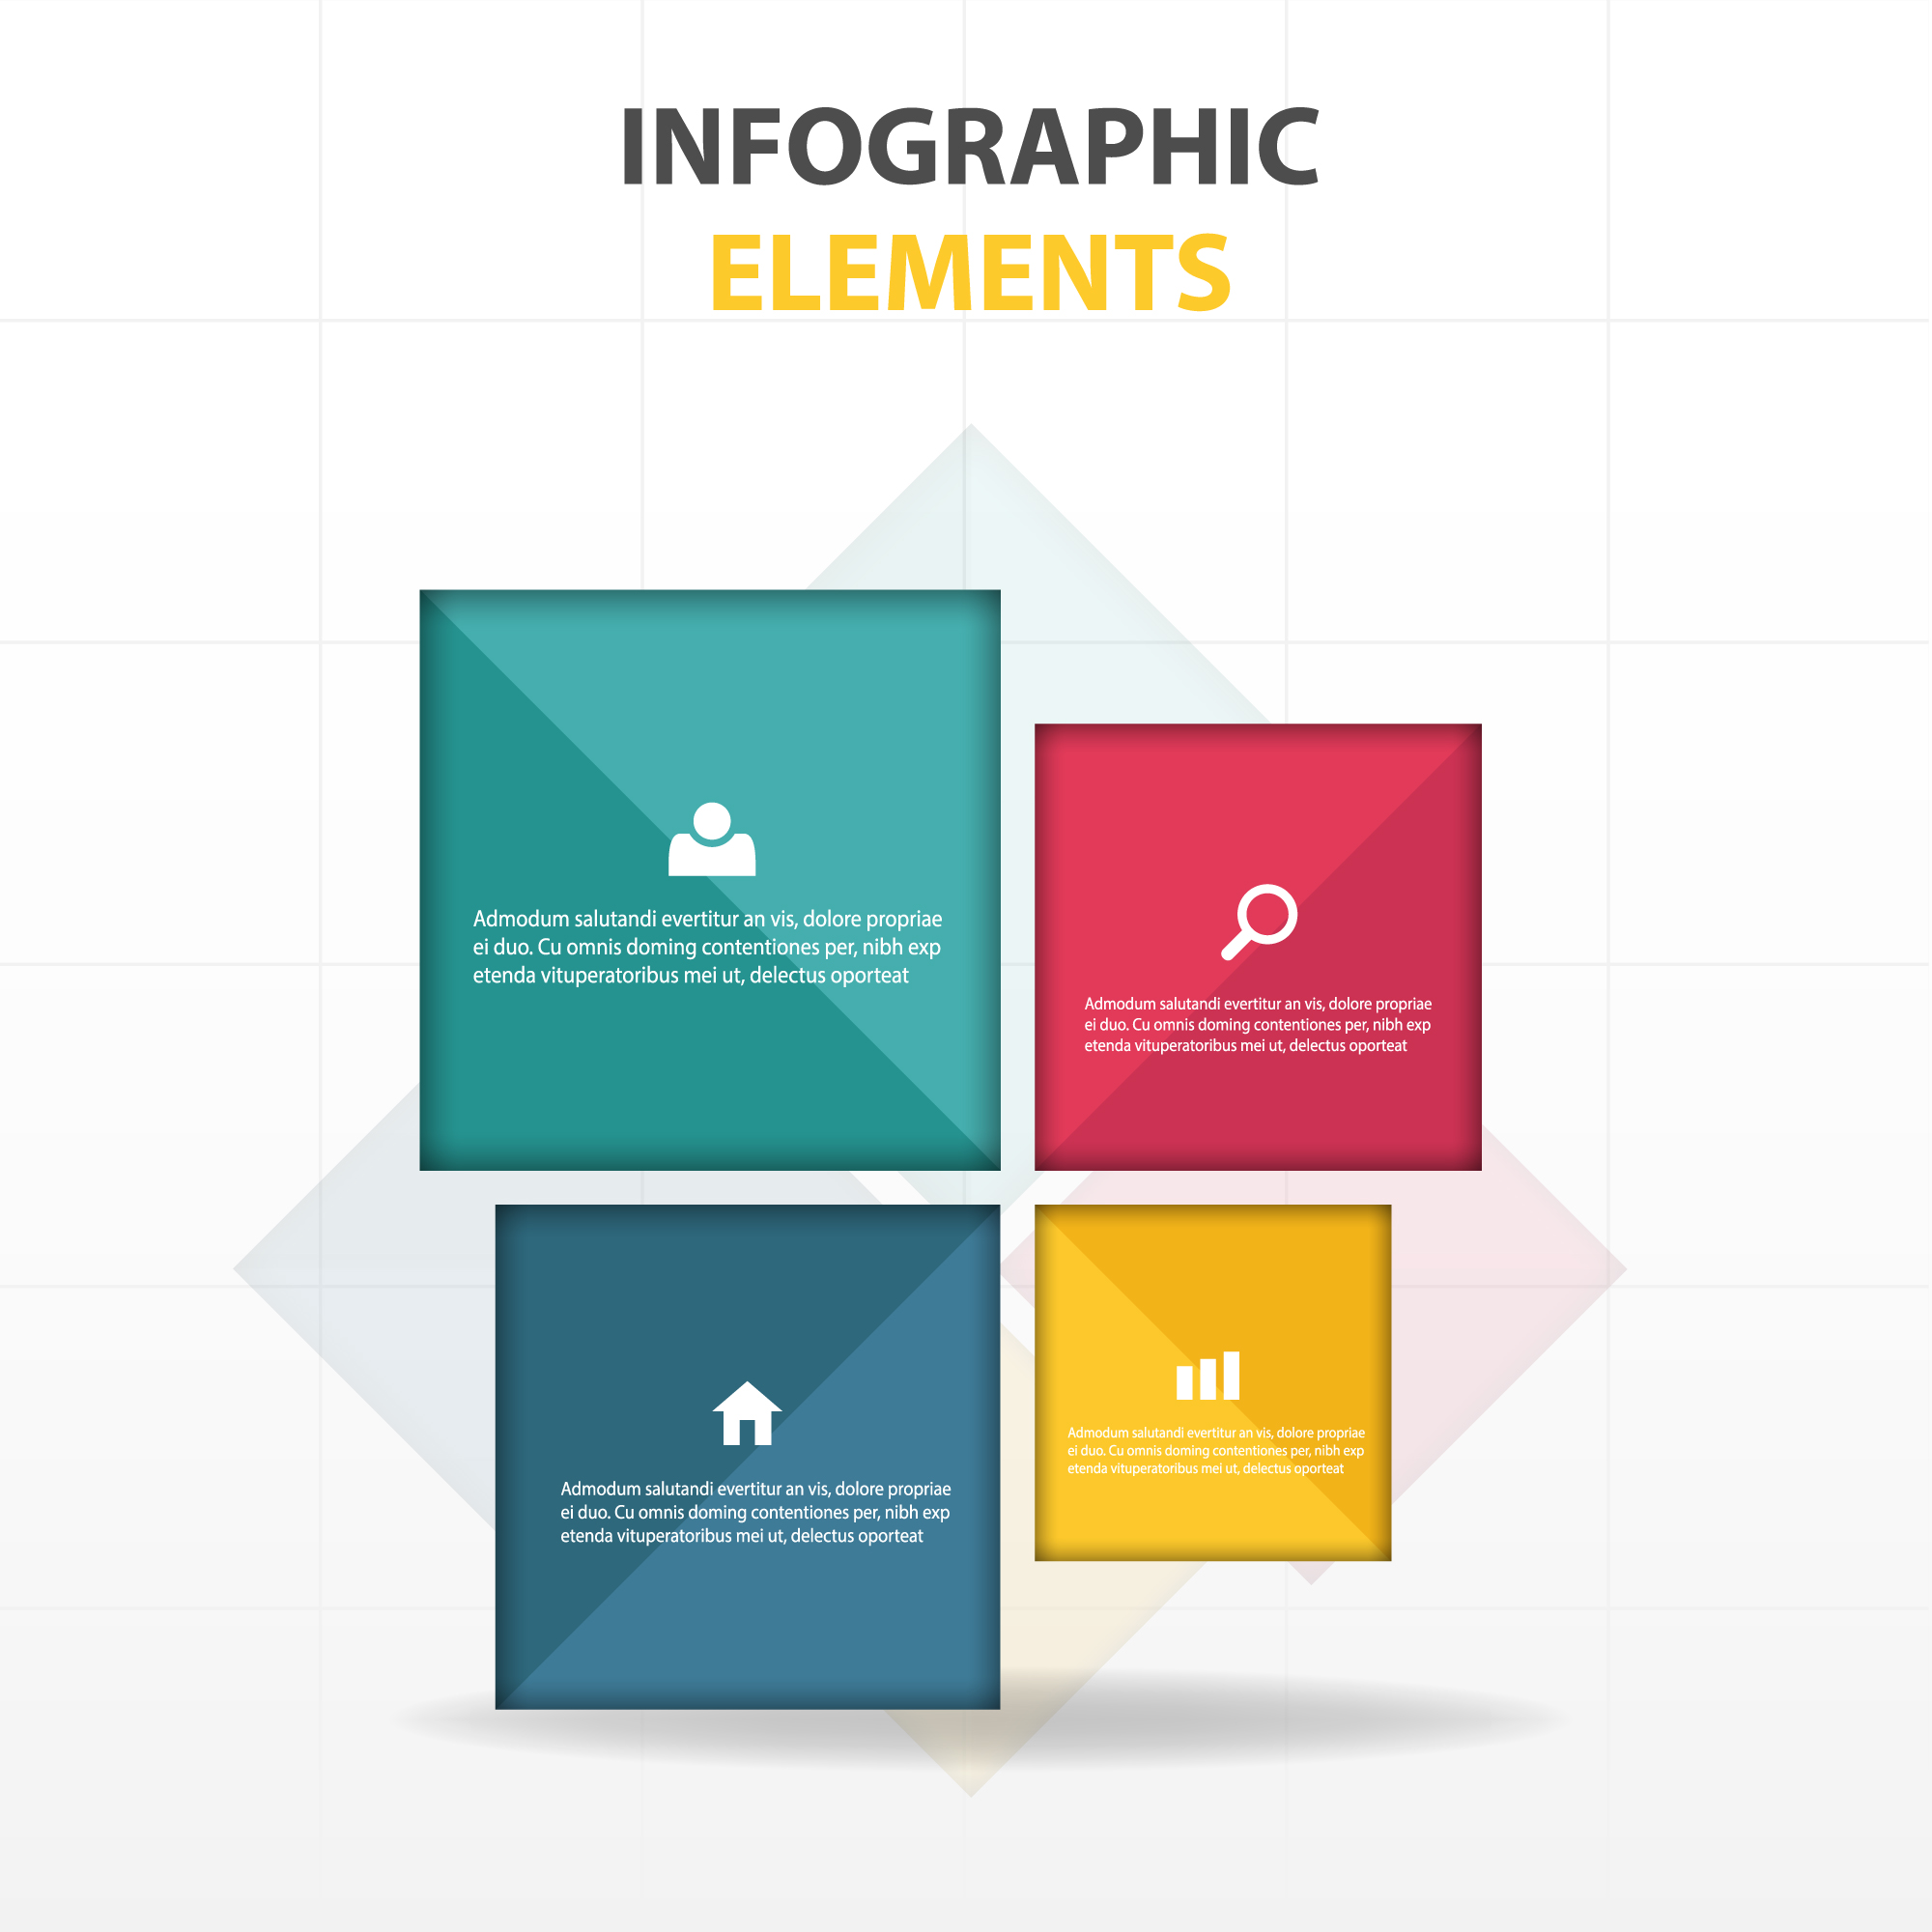 Infographic elements, square shapes